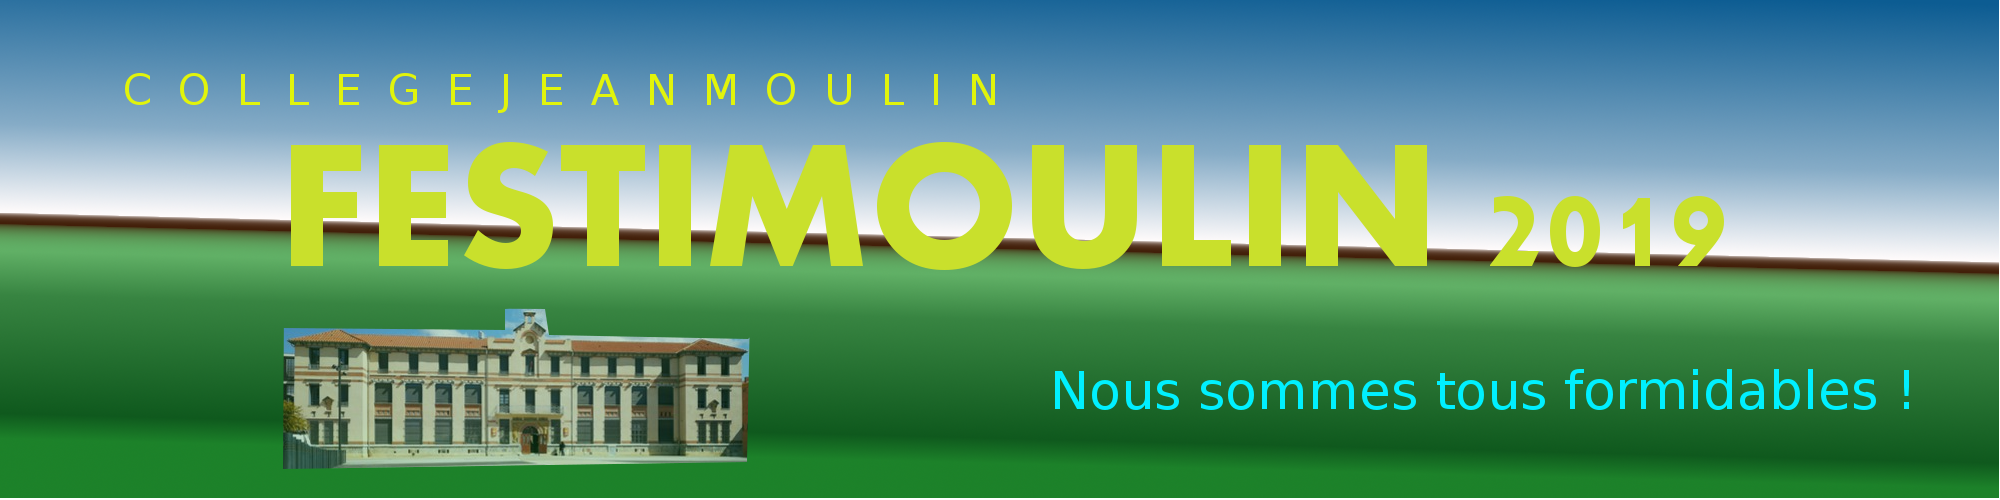 MARQUE PAGE FESTIMOULIN zahaf.png